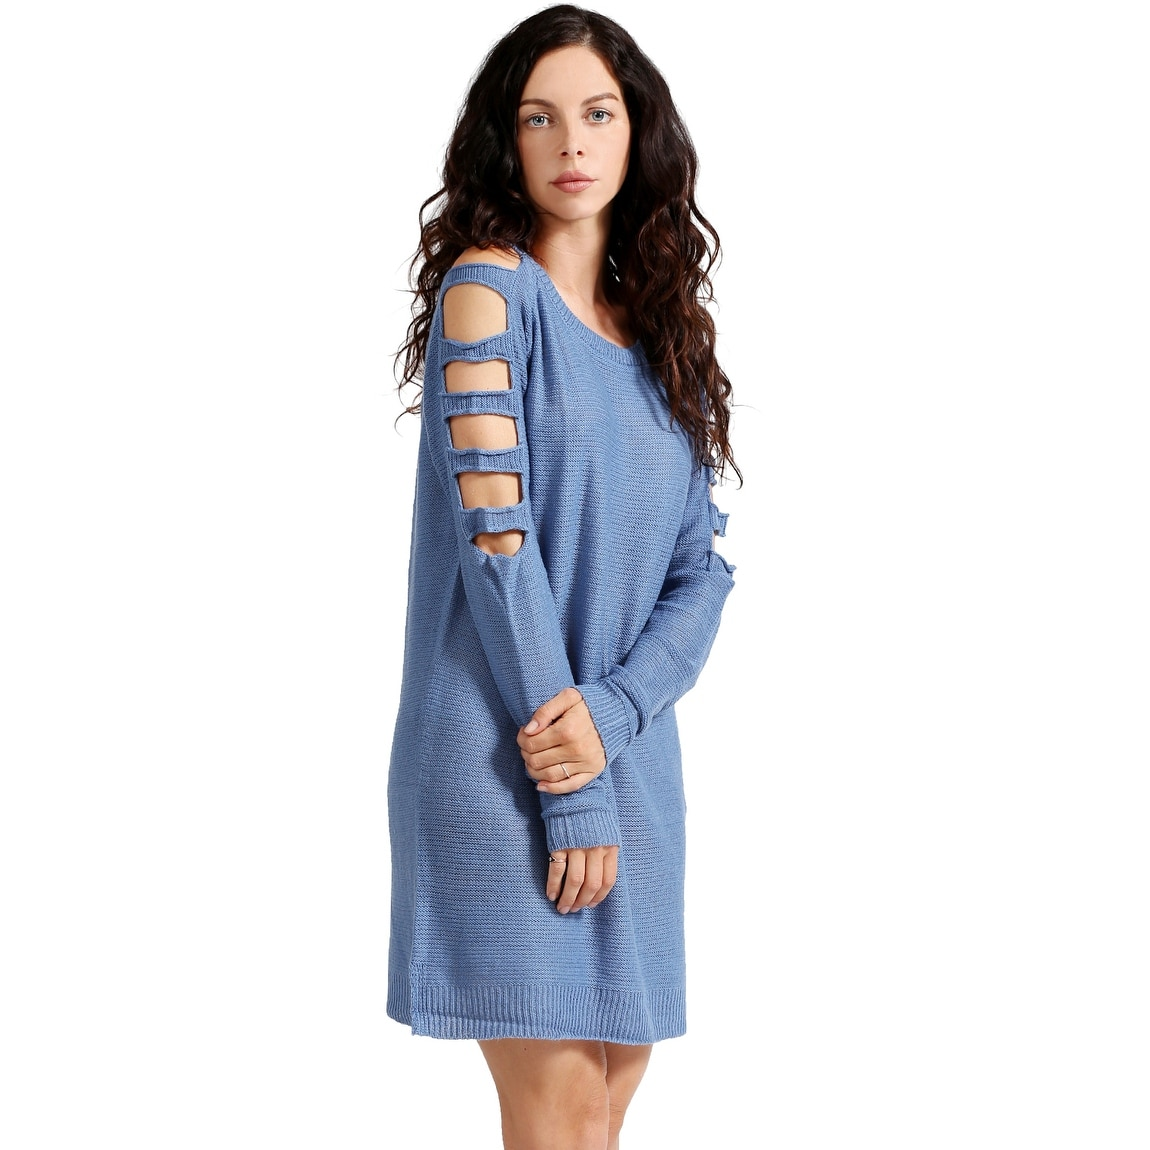 Ne People Women S Ladder Long Sleeve Tunic Sweater Dress Newdr90 Free Shipping On Orders Over 45 17979164